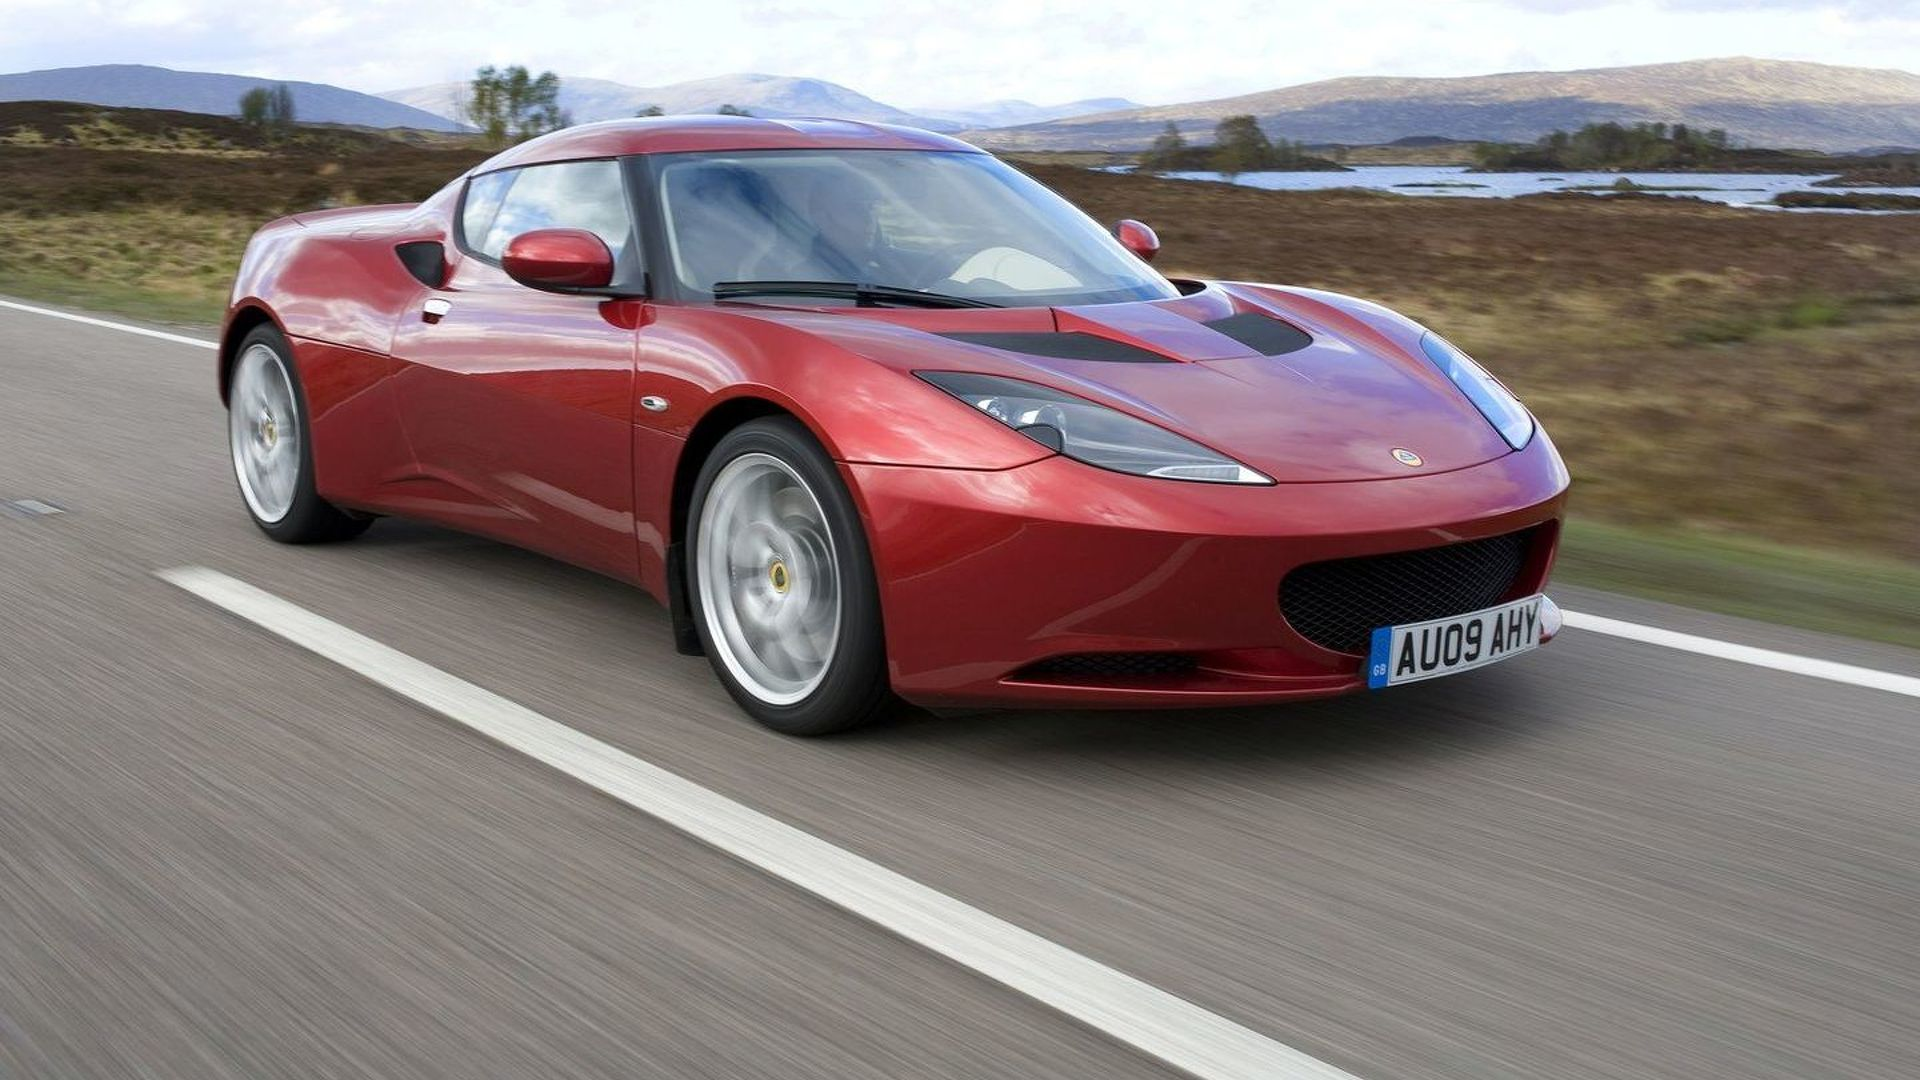 Lotus Evora gets a reprieve in the US, will return in 2016